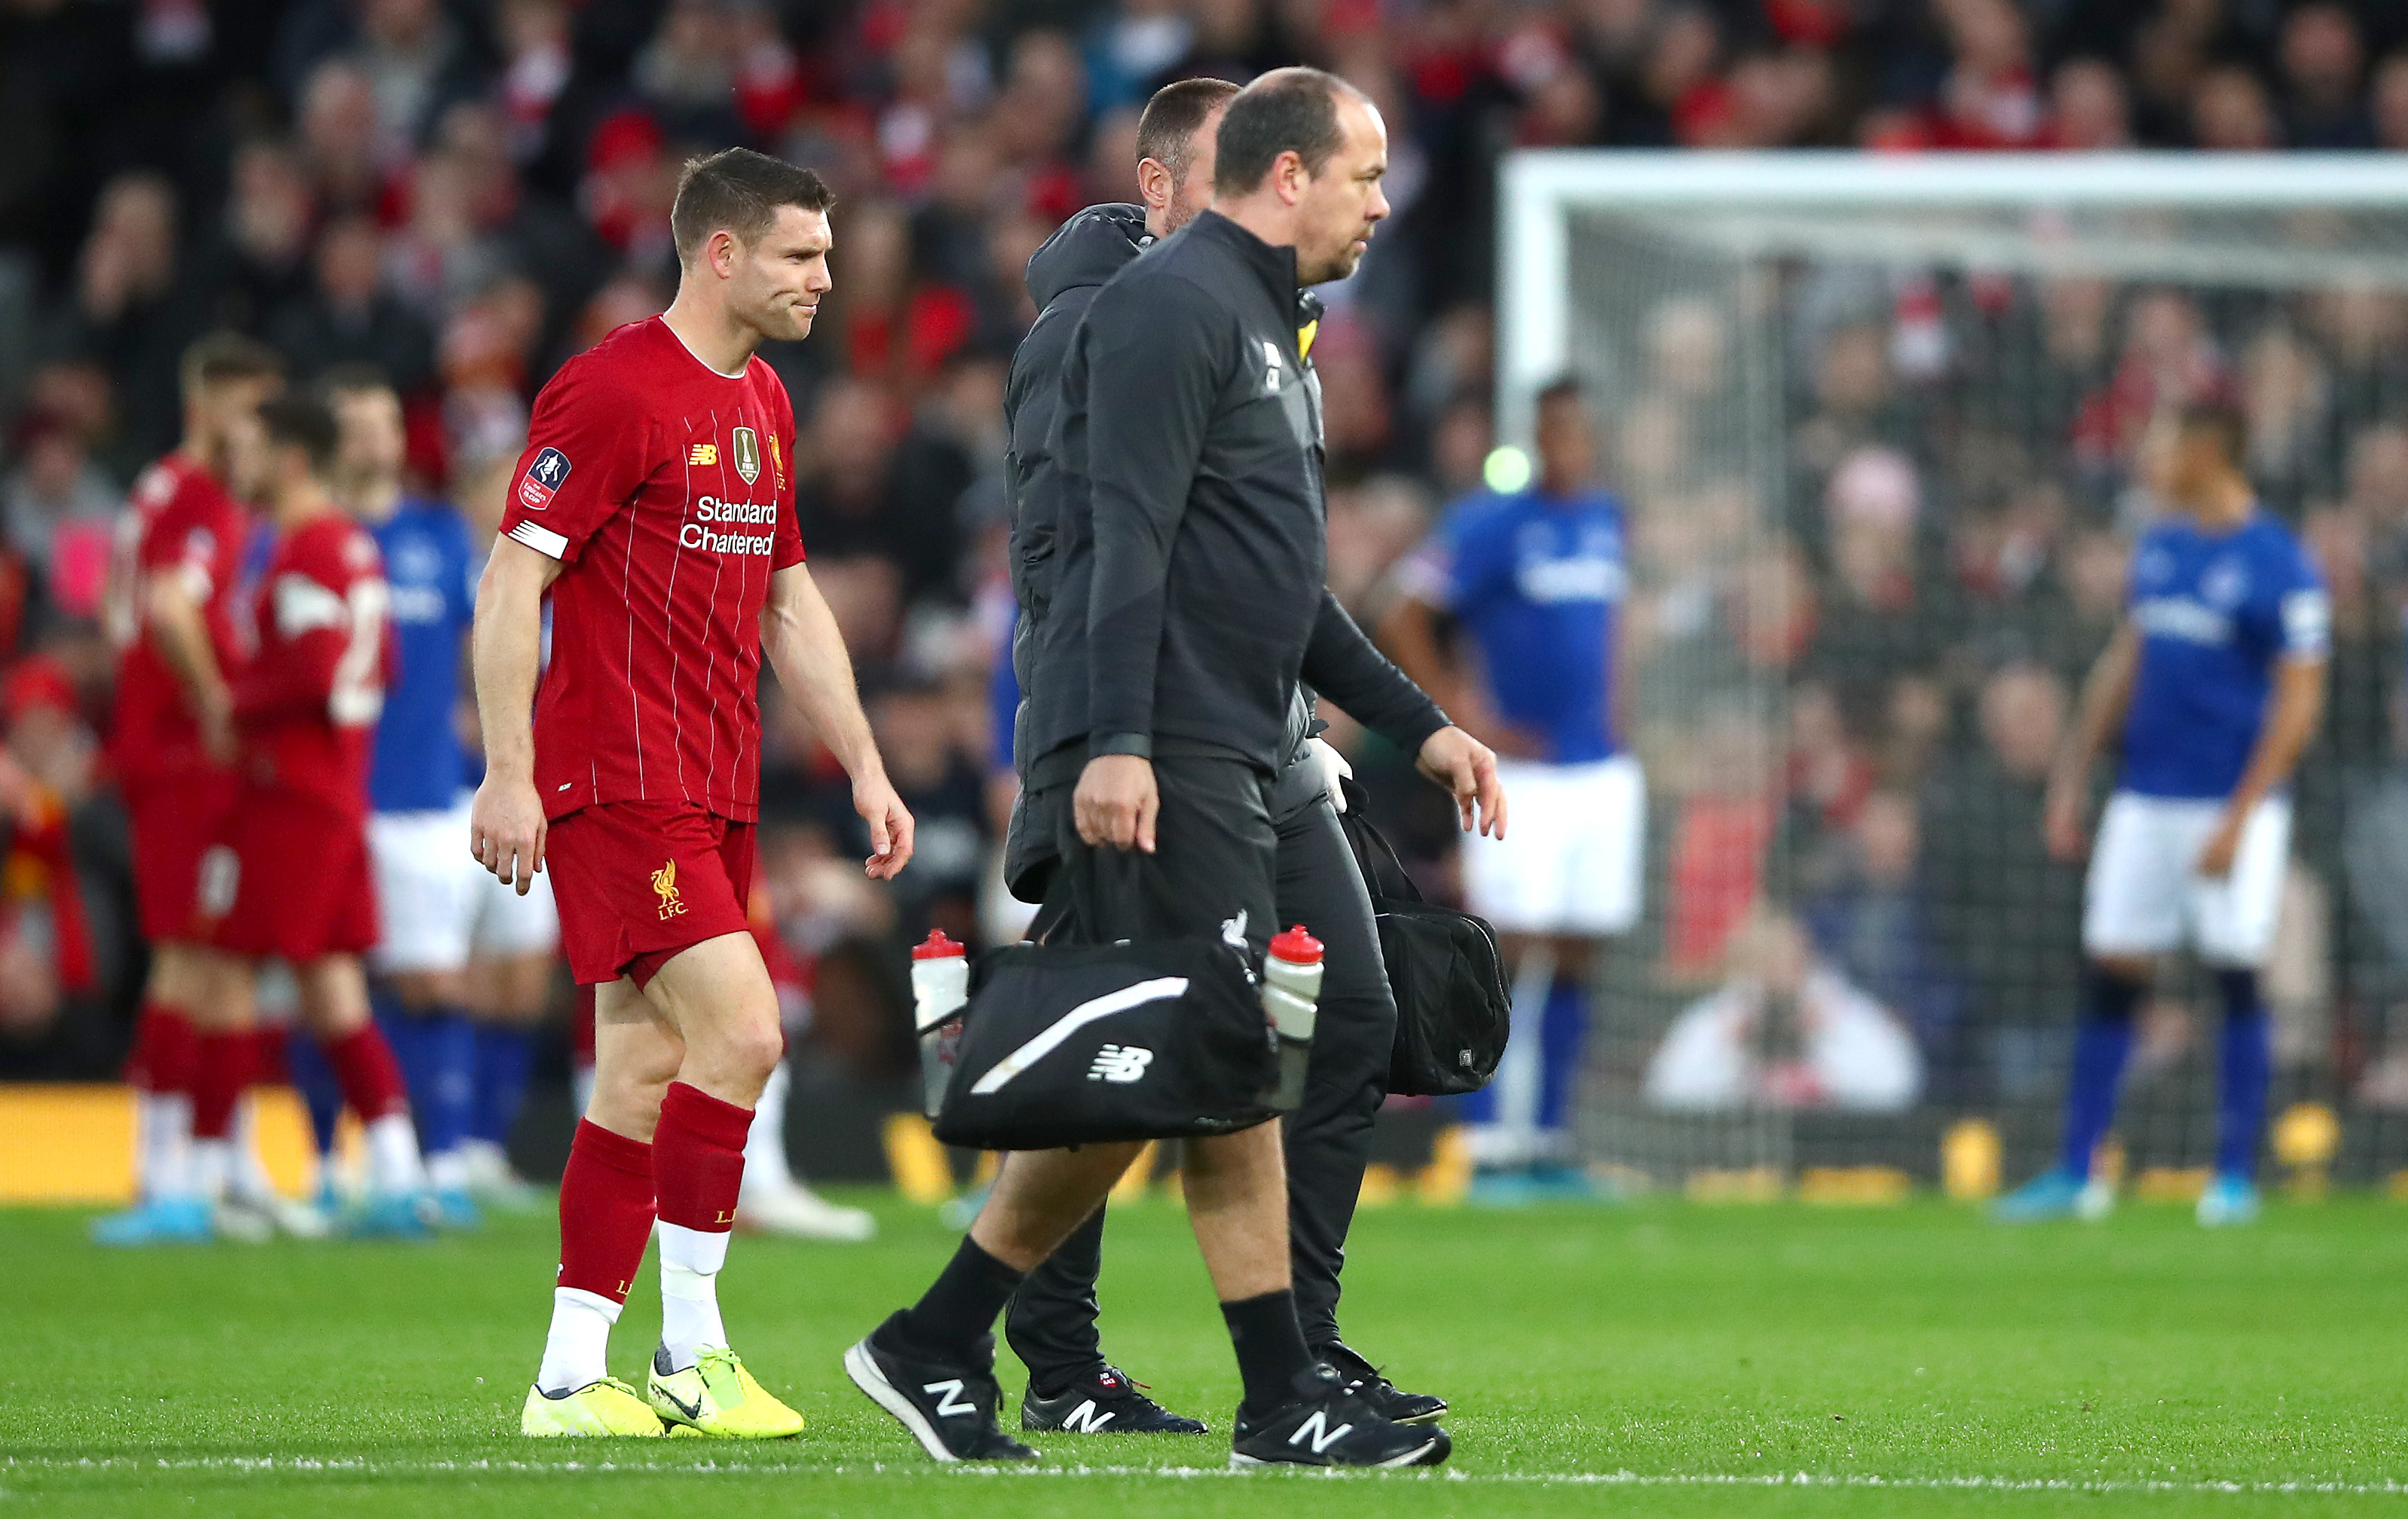 James Milner is the latest Liverpool player to pick up an injury (Photo by Clive Brunskill/Getty Images)